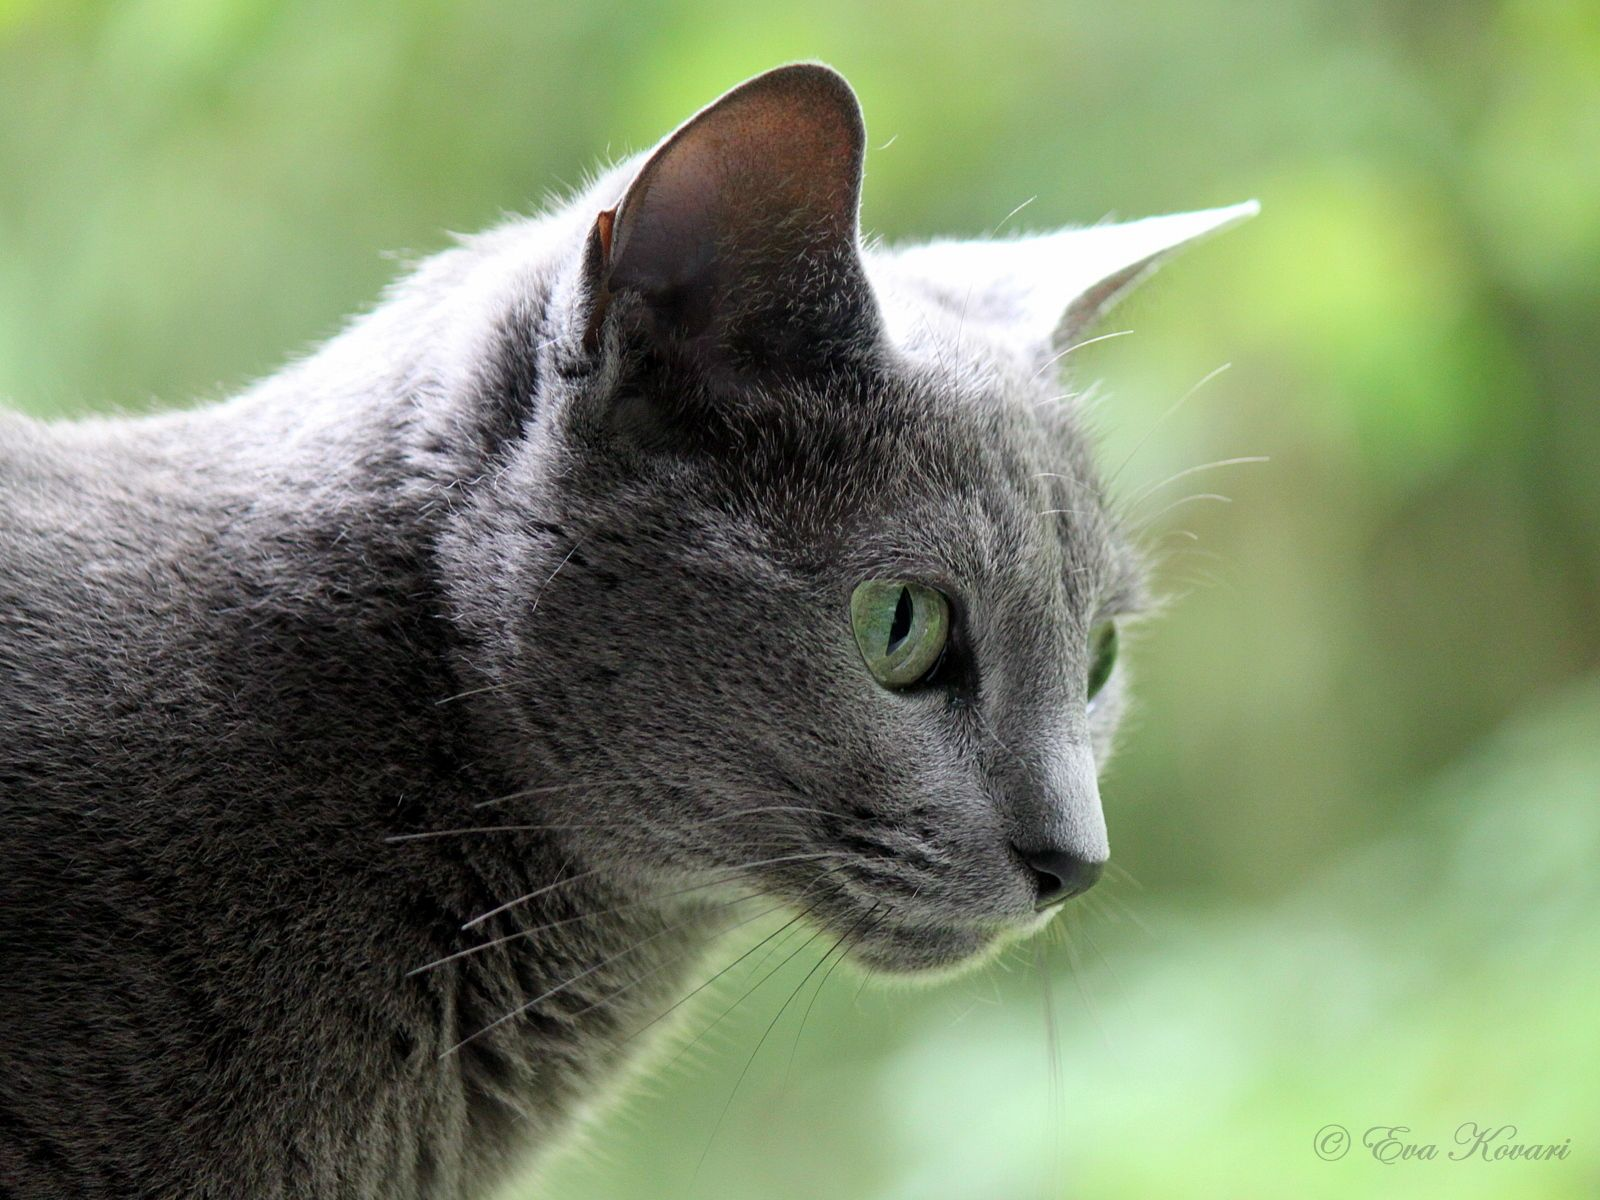 I love Russian blue cats. I have one and its very sweet. Most of the time